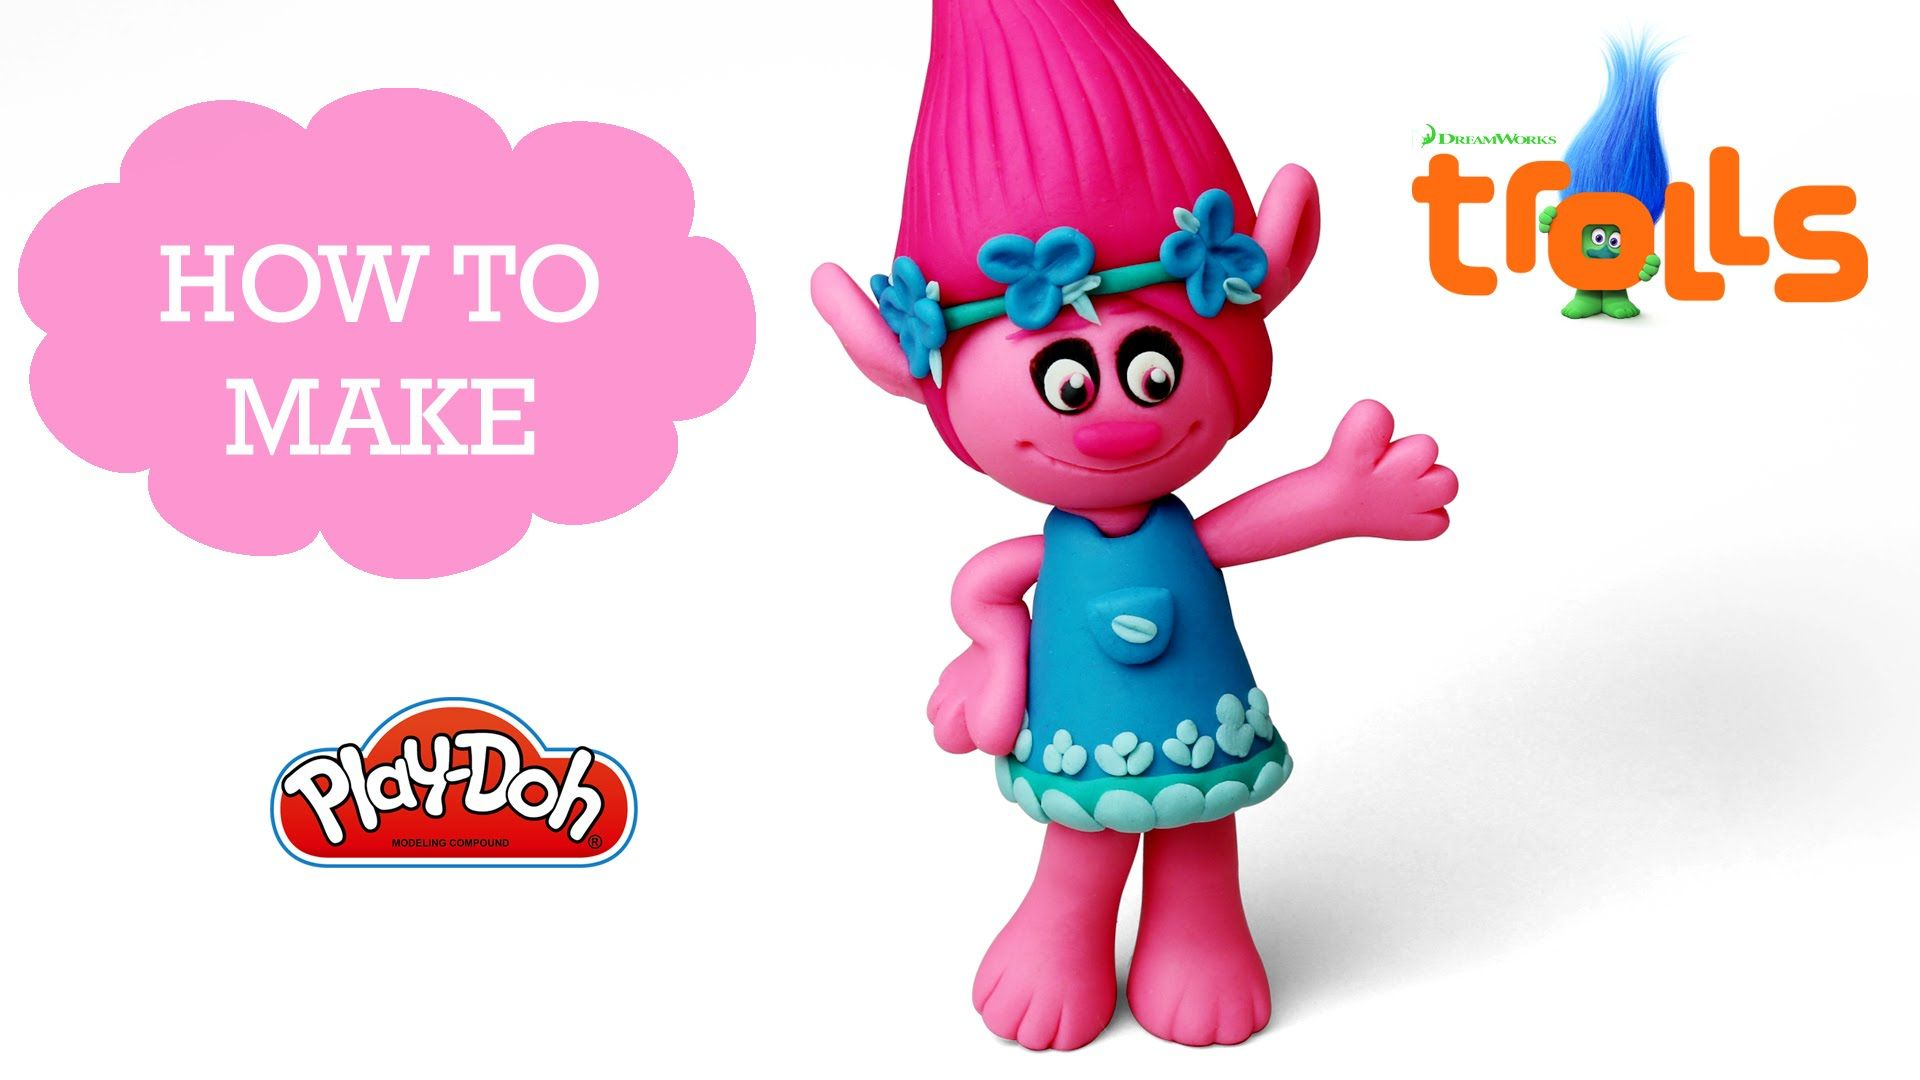 Characters of dreamworks d dreamworks animation photo pictures to pin - Play Doh Making Princess Poppy In Trolls Dreamworks Animation Trolls Is An Upcoming 2016 American